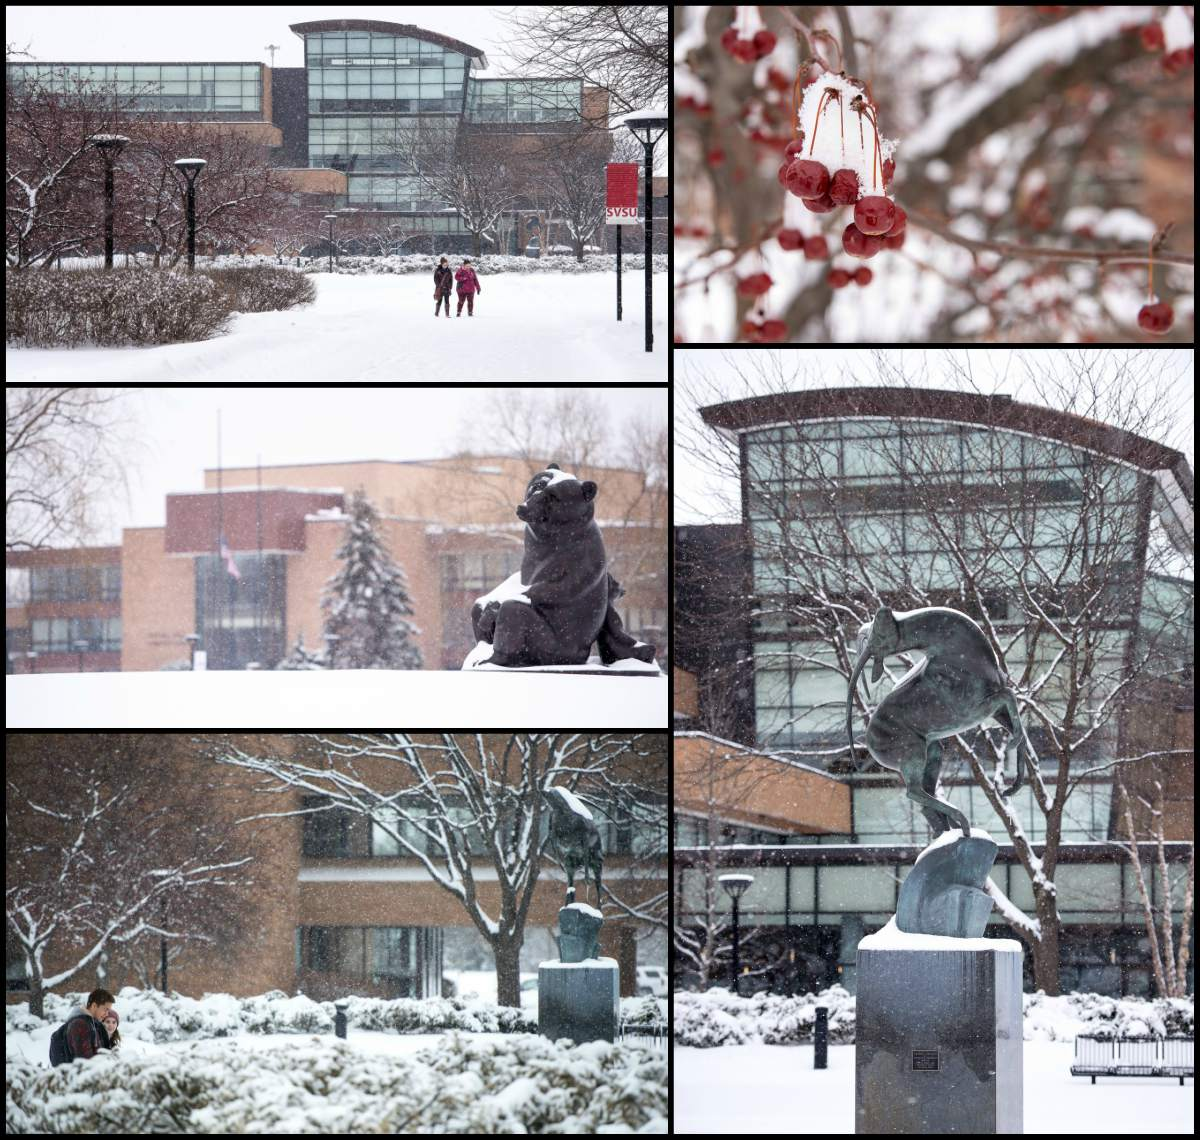 College of images from around a snow-covered campus